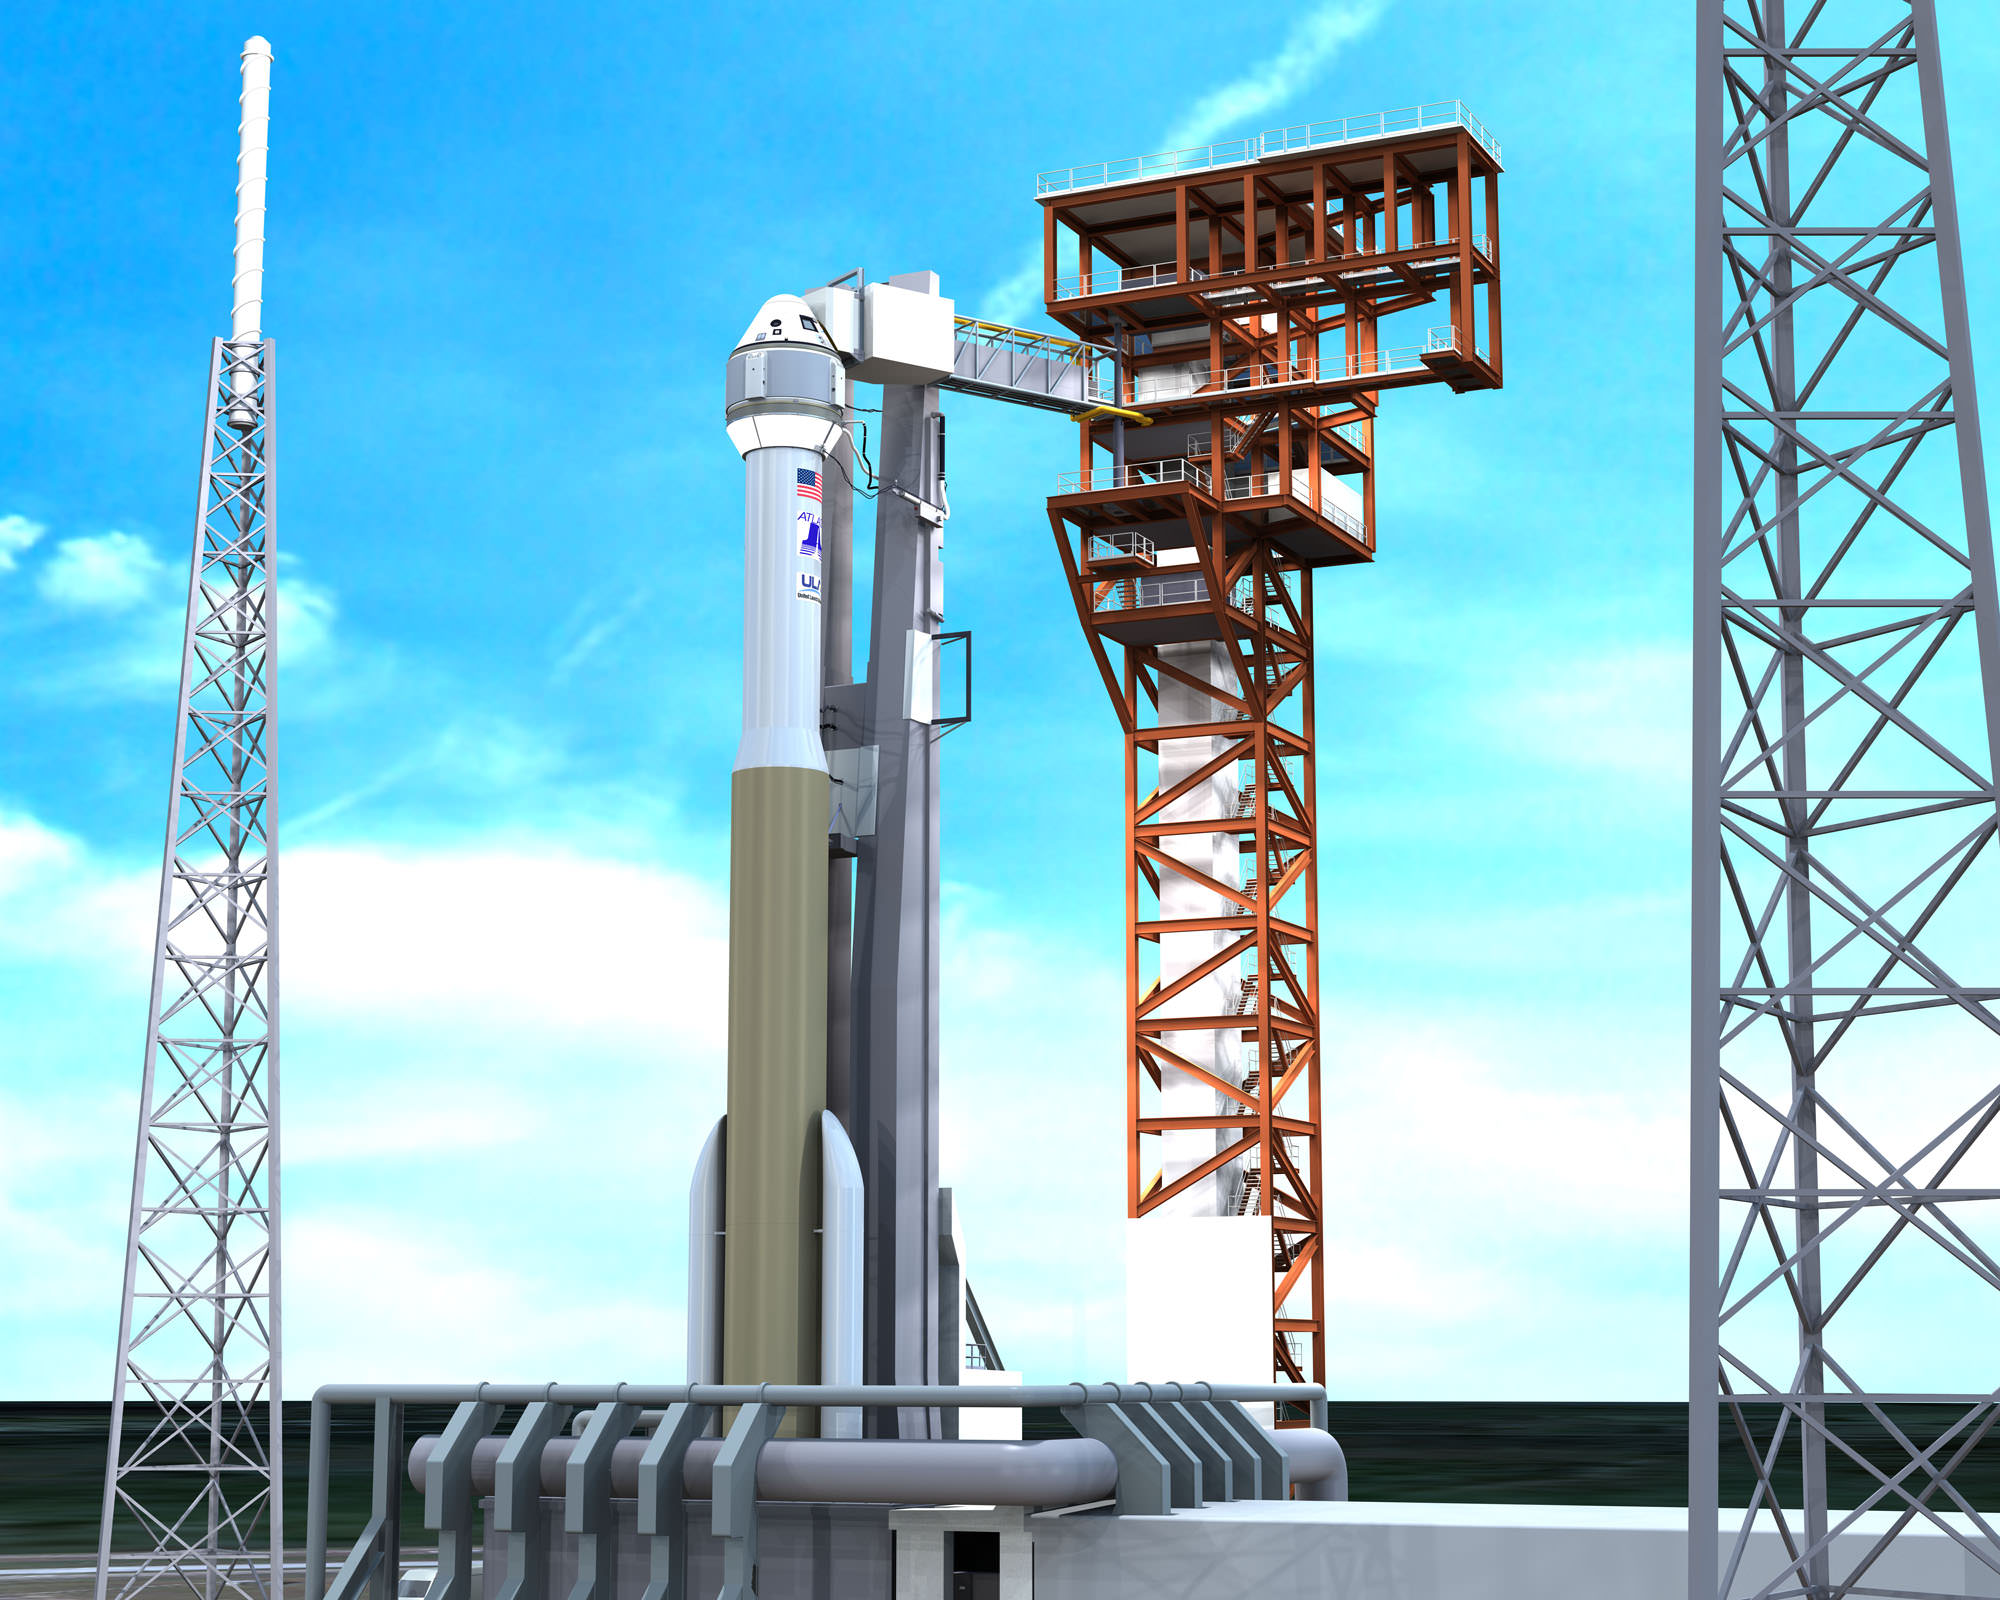 Artist's concept of Boeing's CST-100 space taxi atop a human rated ULA Atlas-V rocket showing new crew access tower and arm at Space Launch Complex 41, Cape Canaveral Air Force Station, Fl. Credit: ULA/Boeing